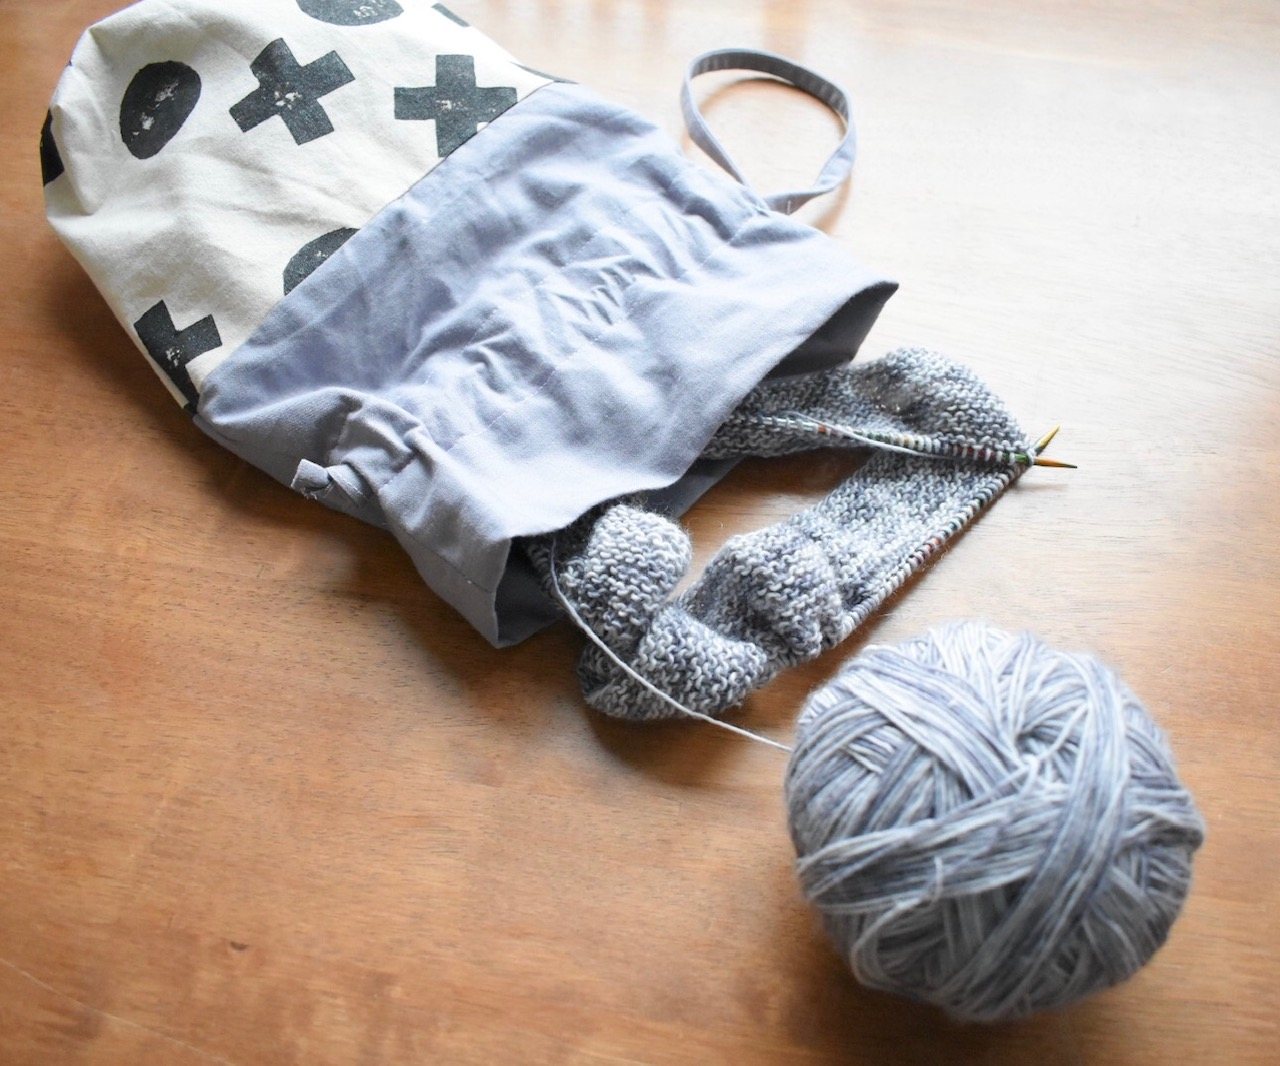 How To Potato Print On Fabric — CRAFTWORKS